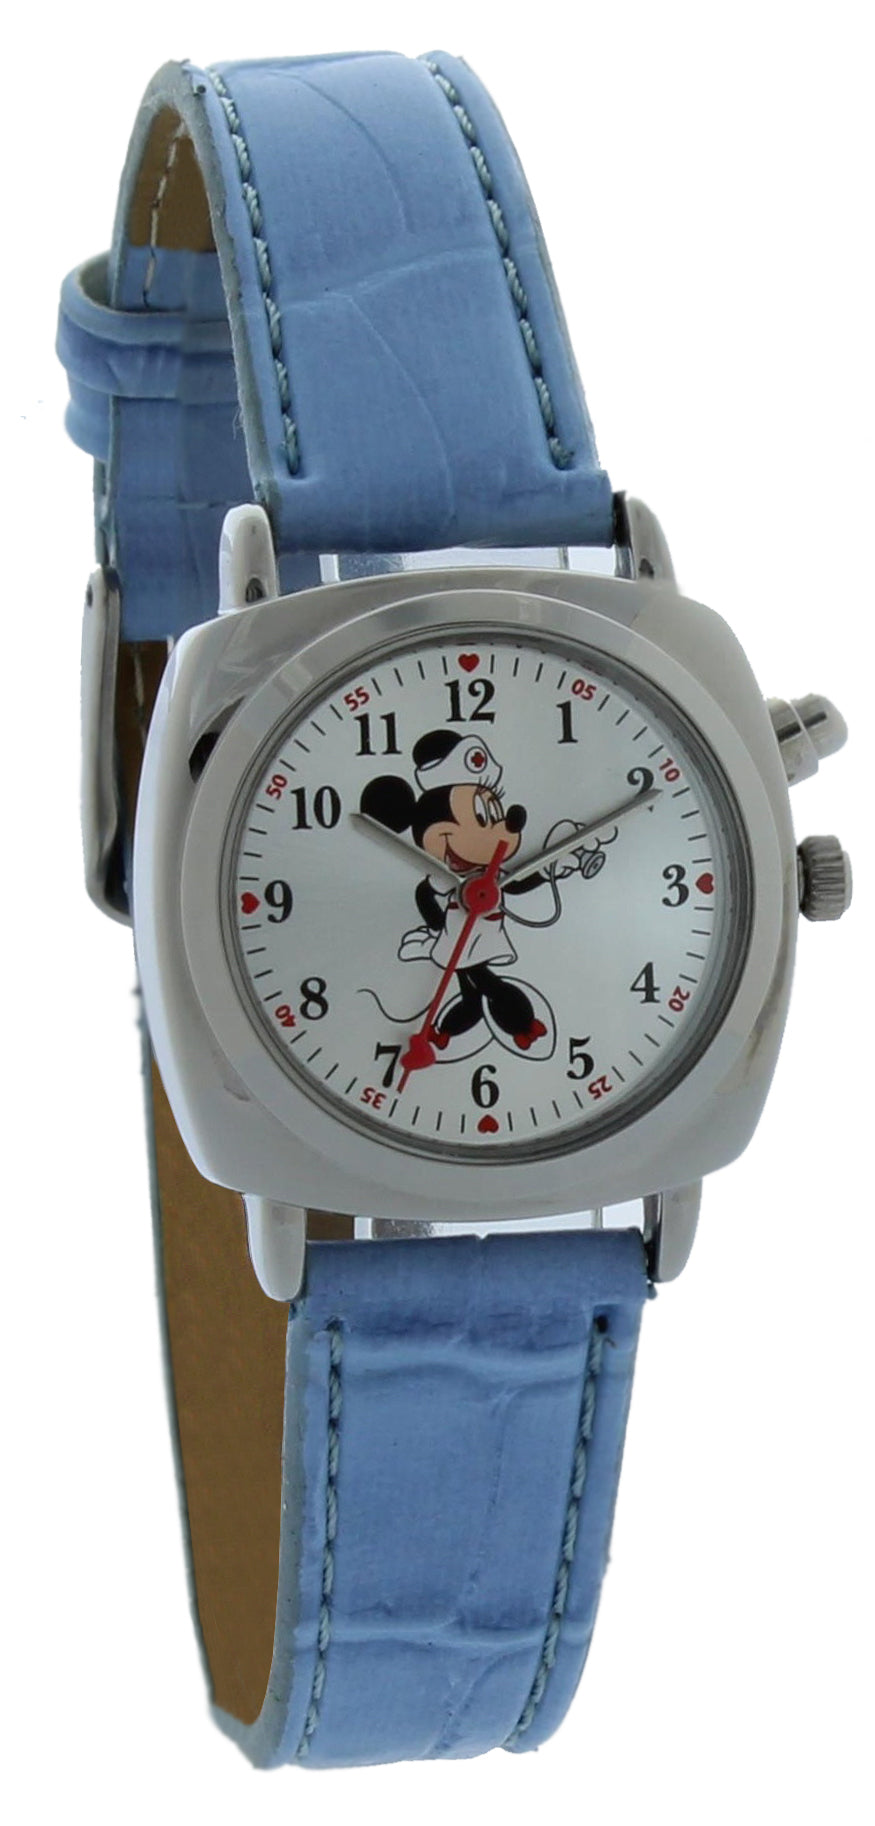 Disney Women's Out of production Minnie Mouse Nurse Musical Watch - MCK308-MUSICAL